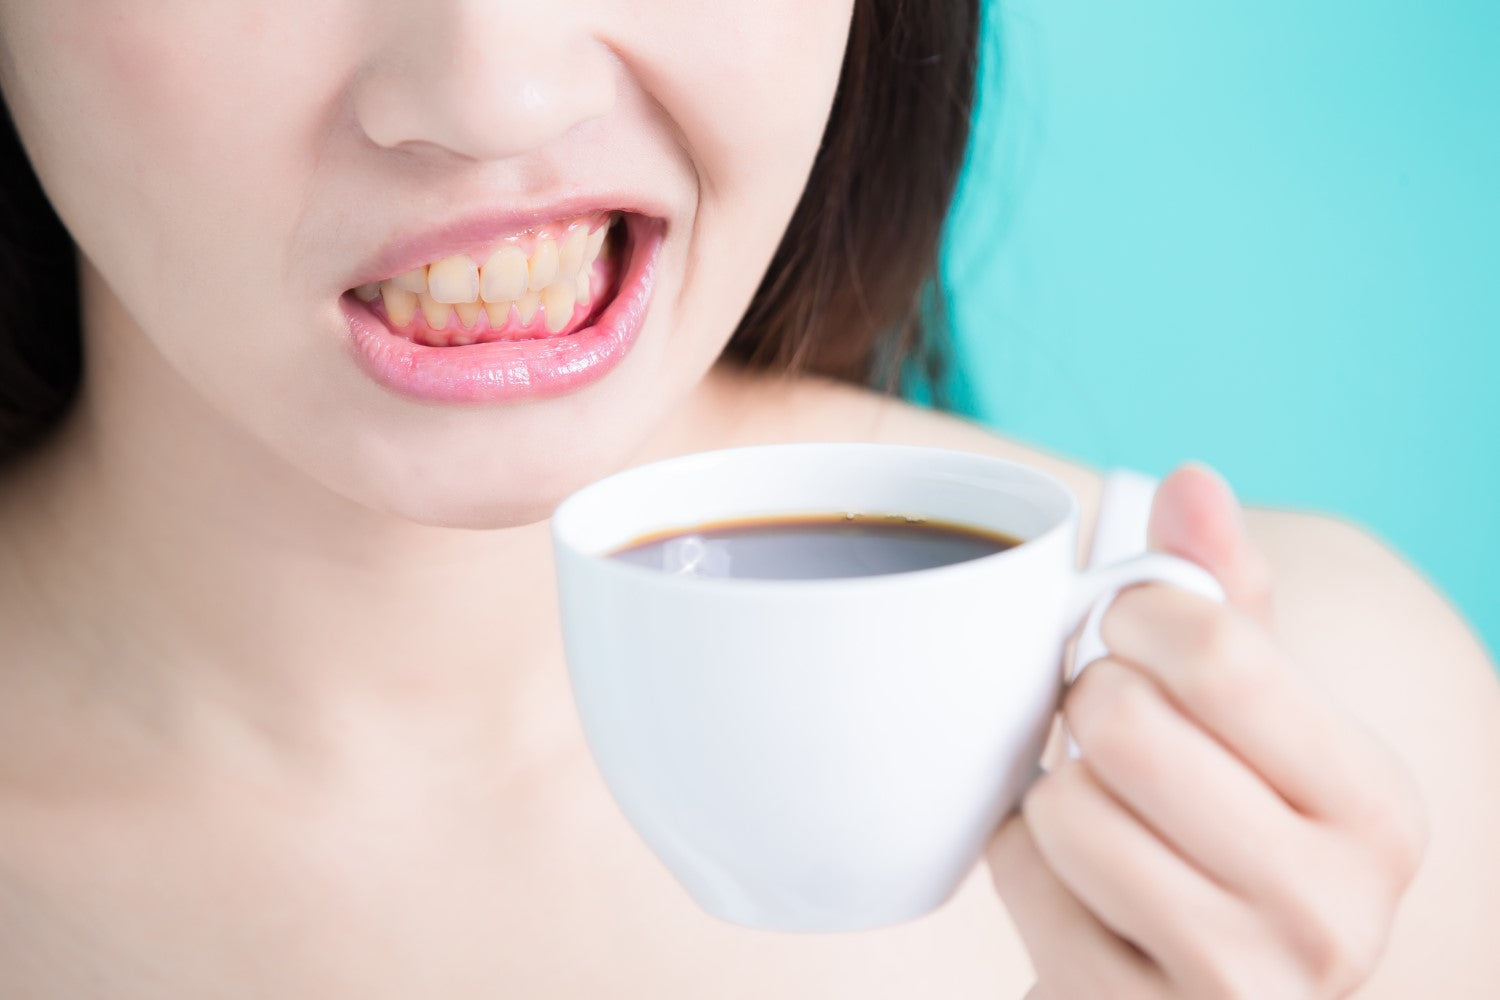 woman showing her teeth while holding a coffee